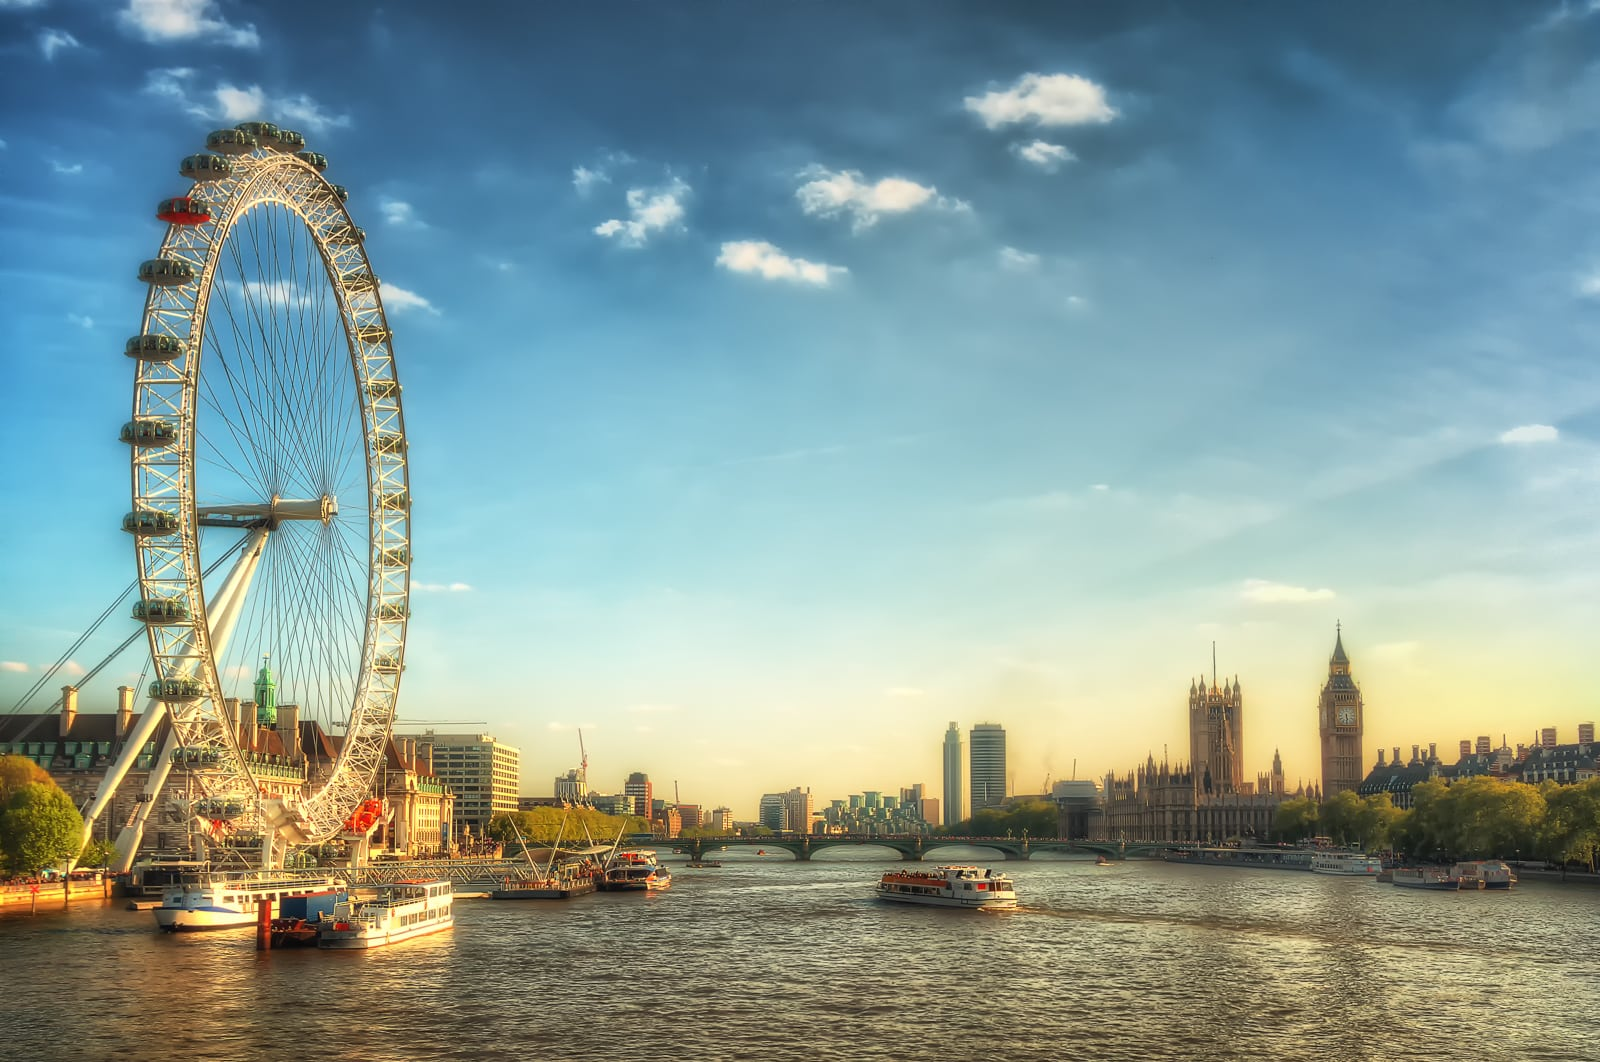 Uitzicht over London Eye, Thames River en Westminster bij zonsondergang